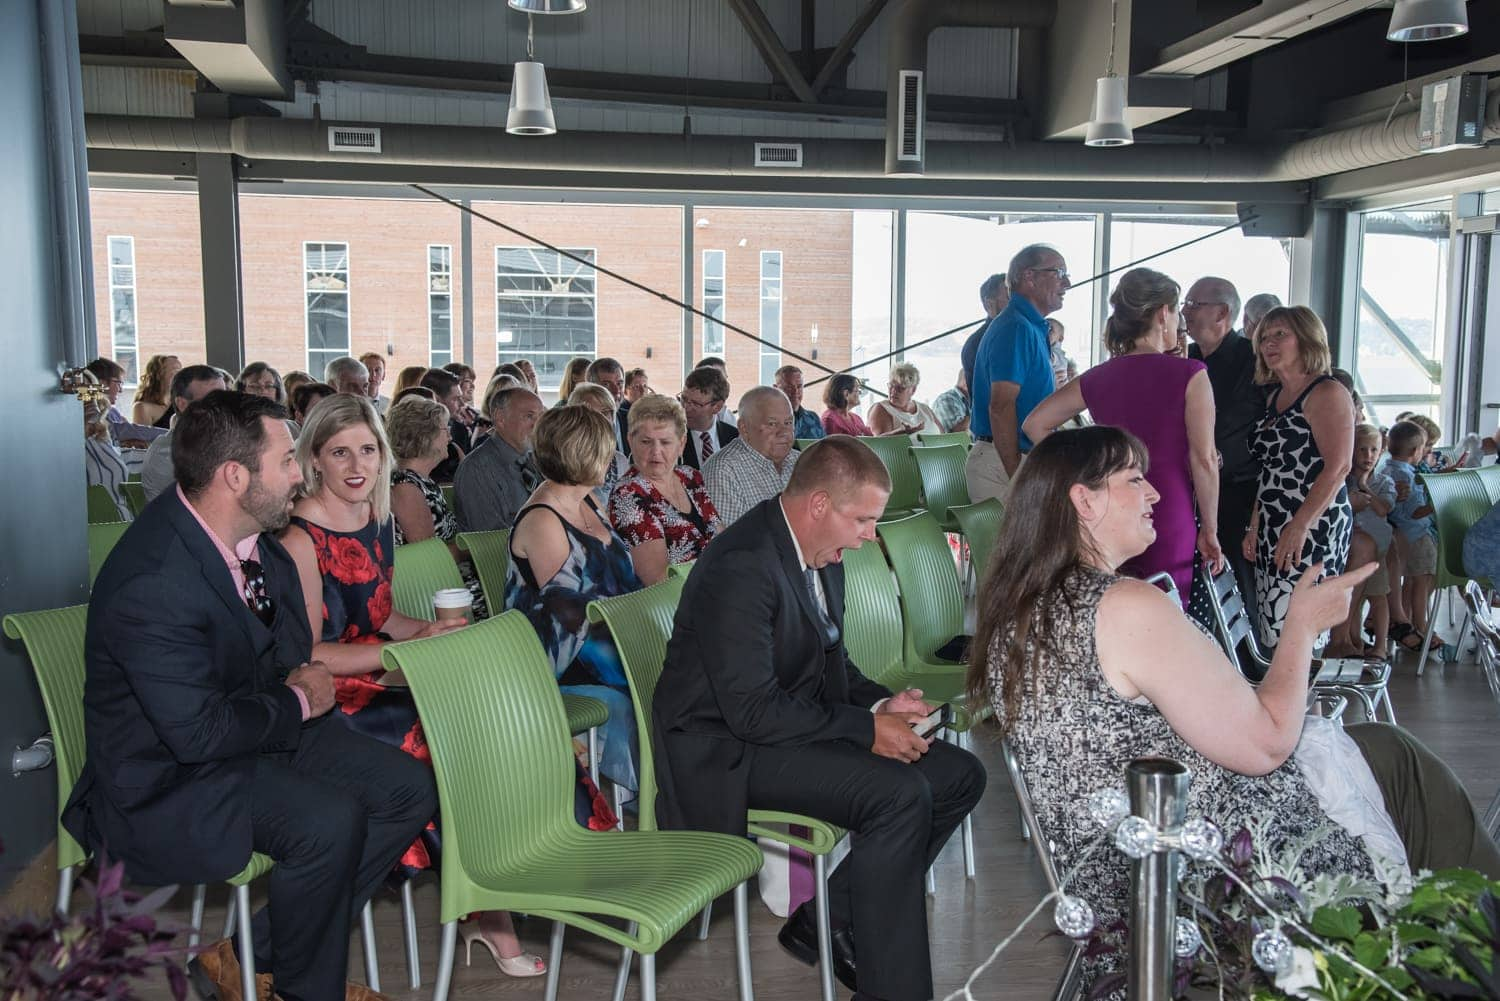 Guests at a wedding ceremony at the Halifax Seaport Farmer's Market, a farmer's market wedding venue.